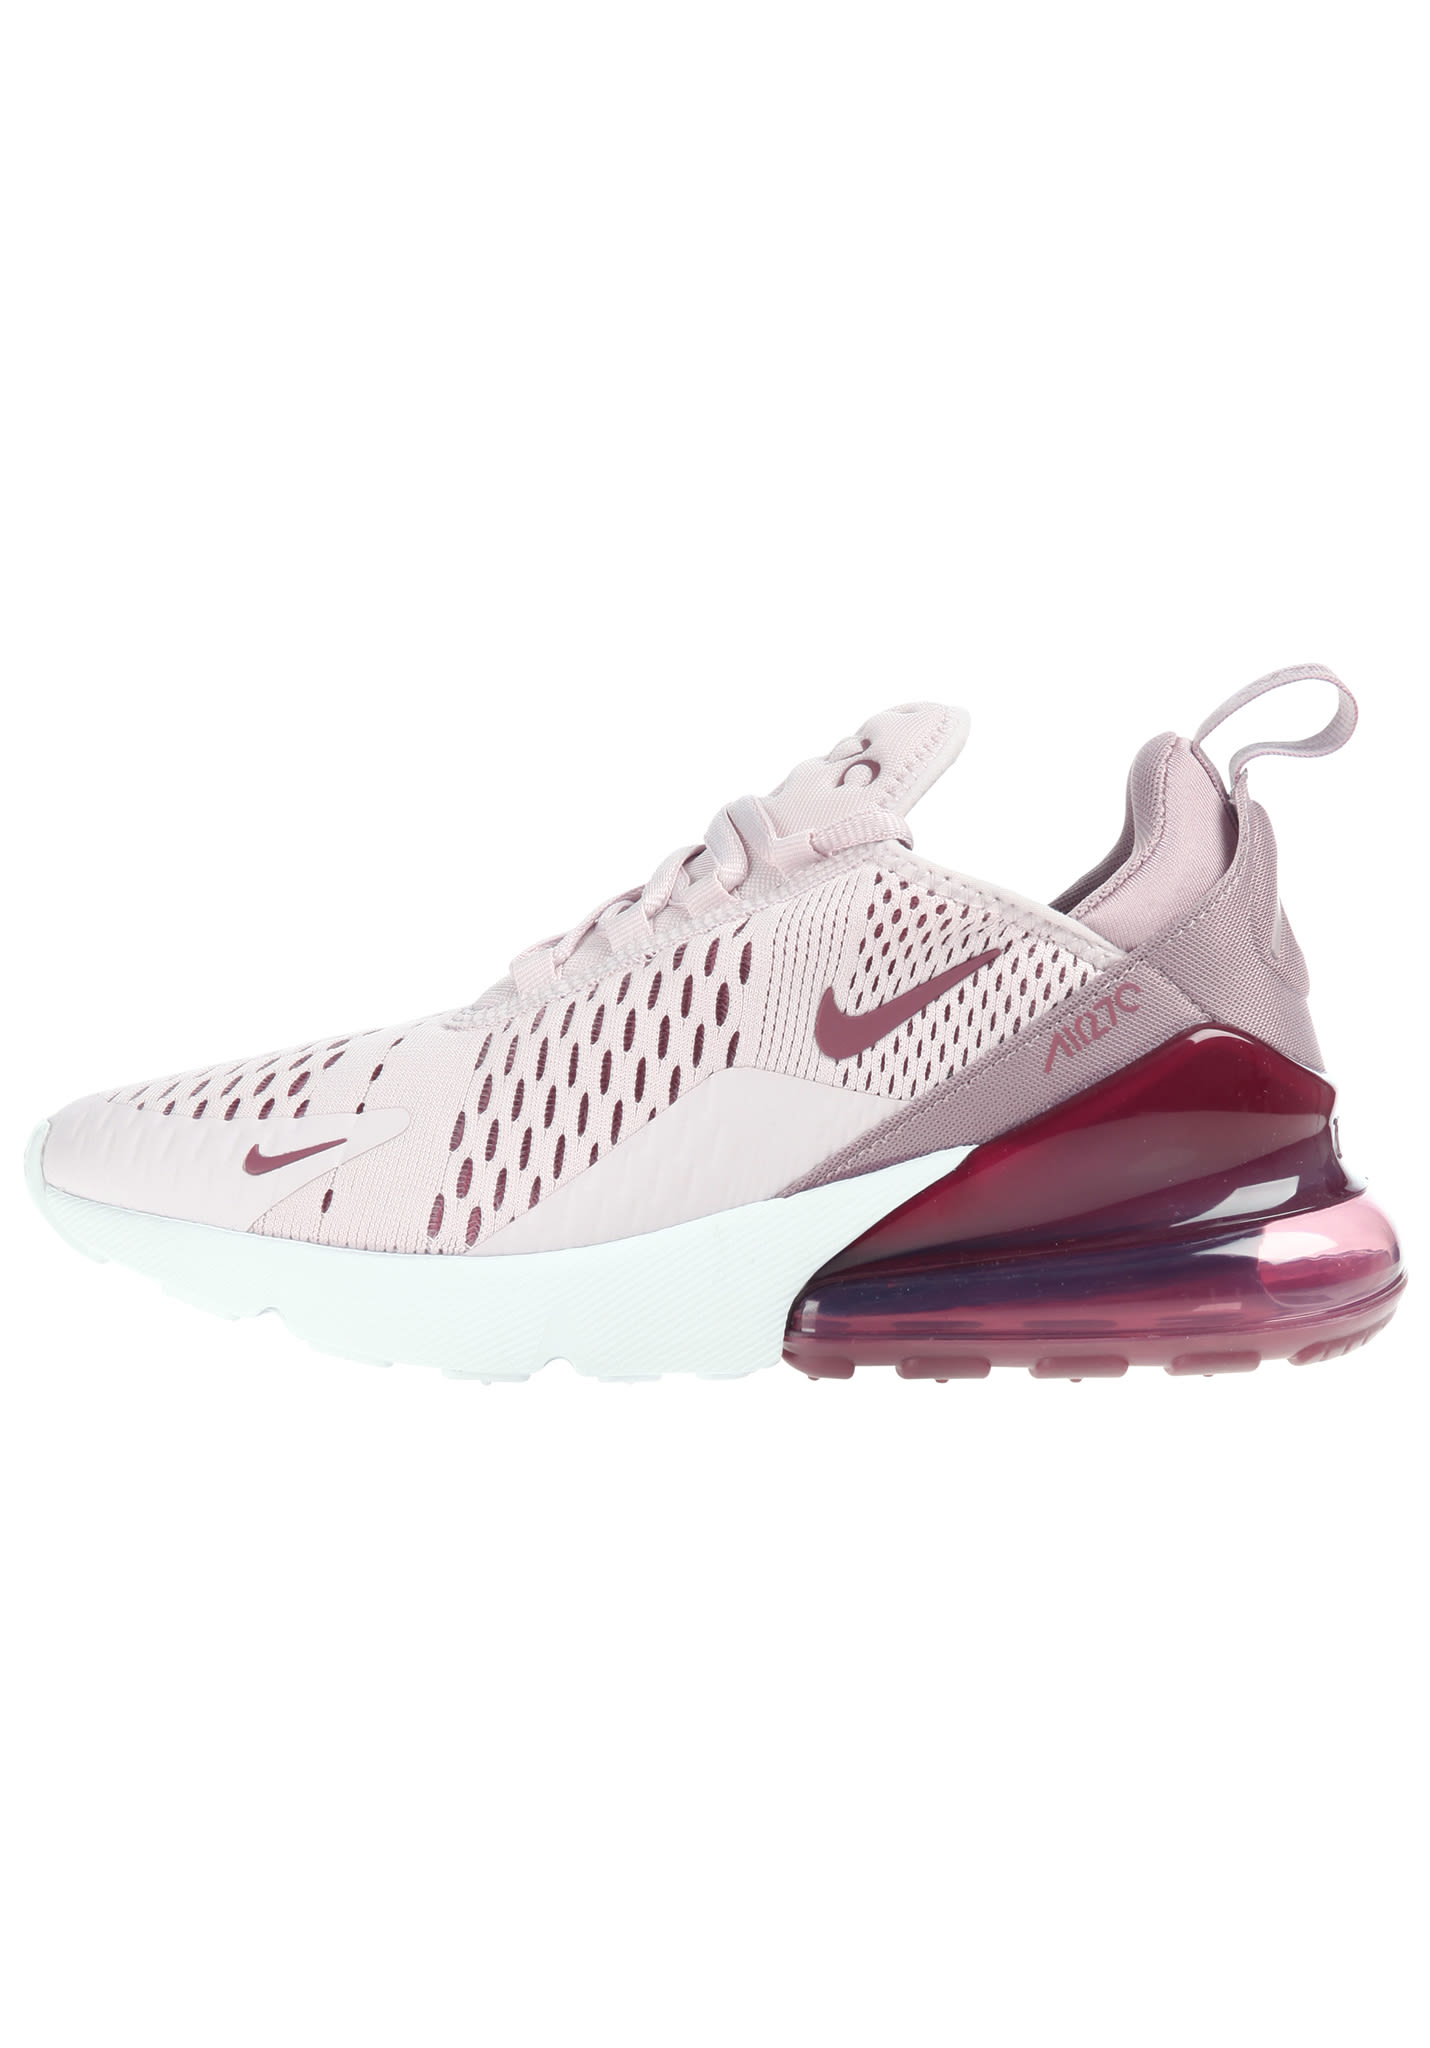 sweden air max white damen 2ae9a c5a4c